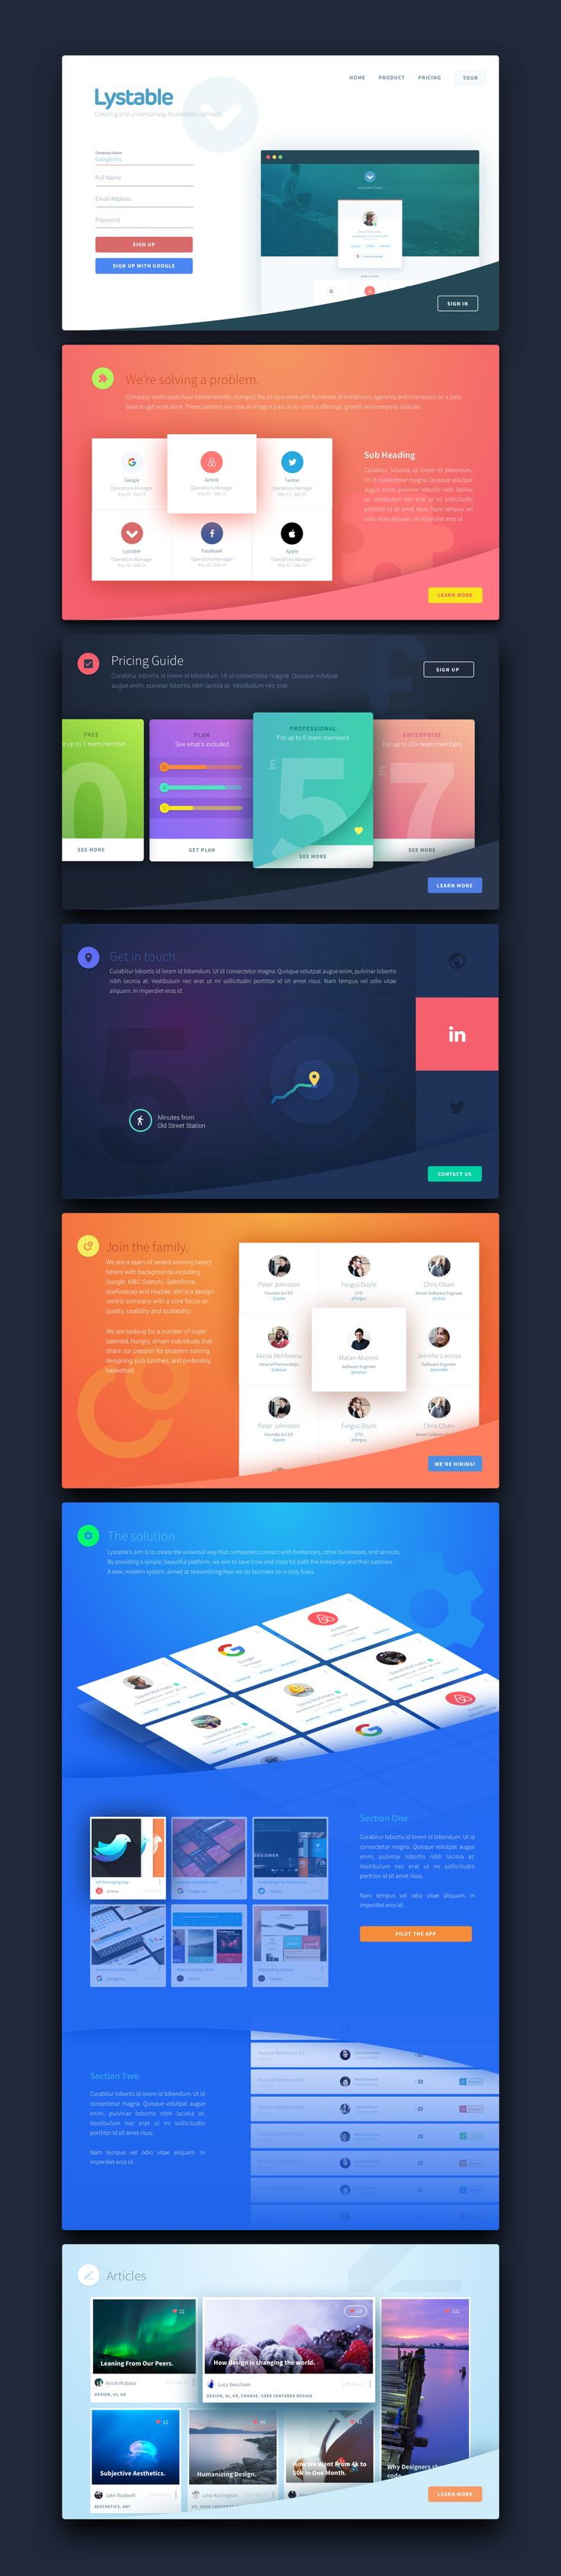 Lystable Landing Page. #WebDesign #UI #UserInterface